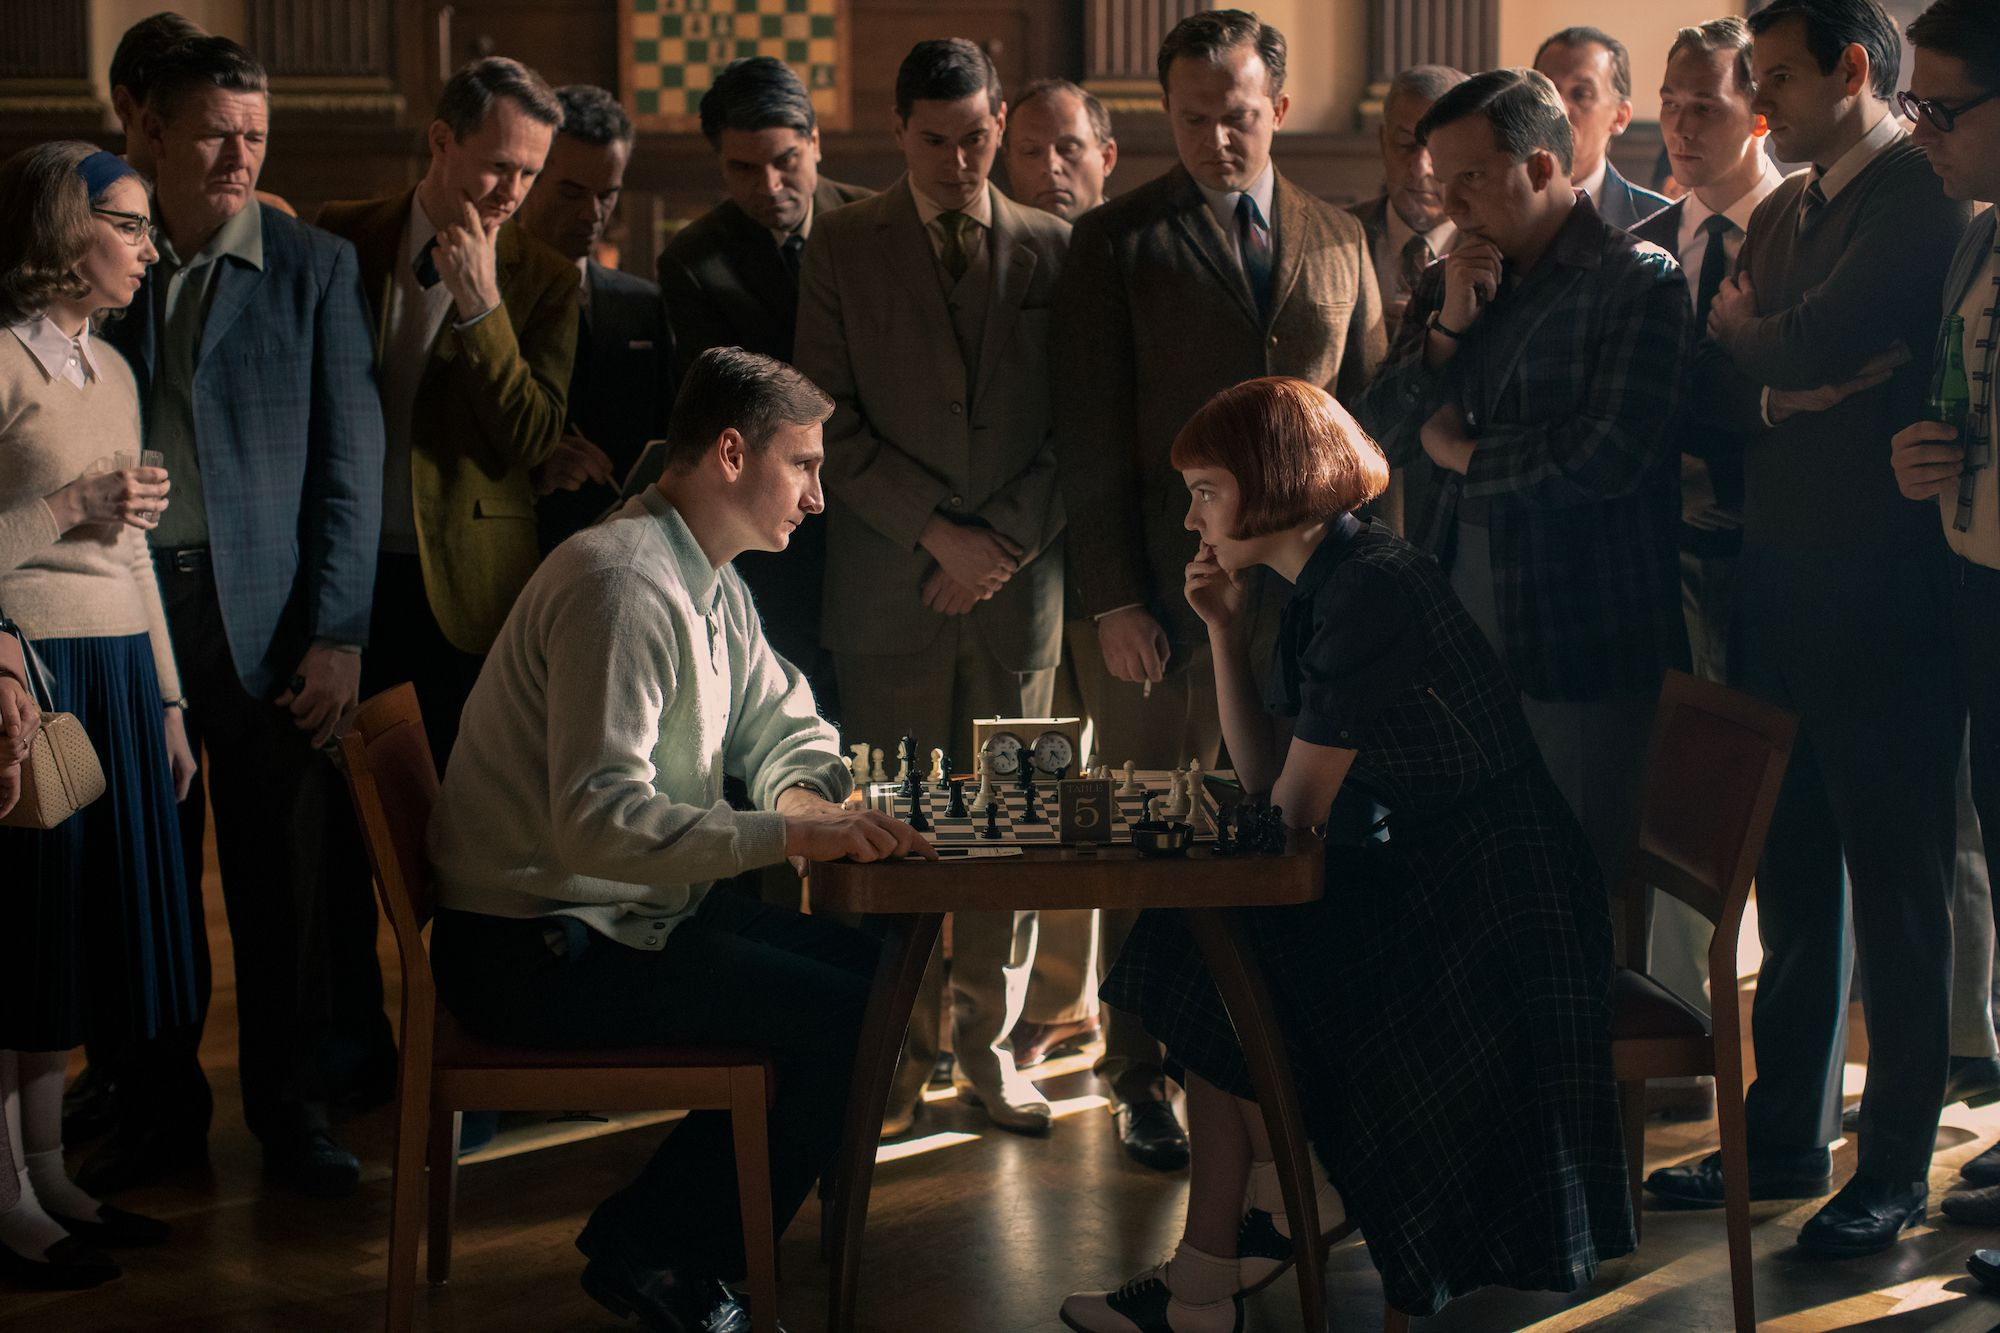 The Queen's Gambit Trailer Teases Netflix Drama About Chess Prodigy |  Collider